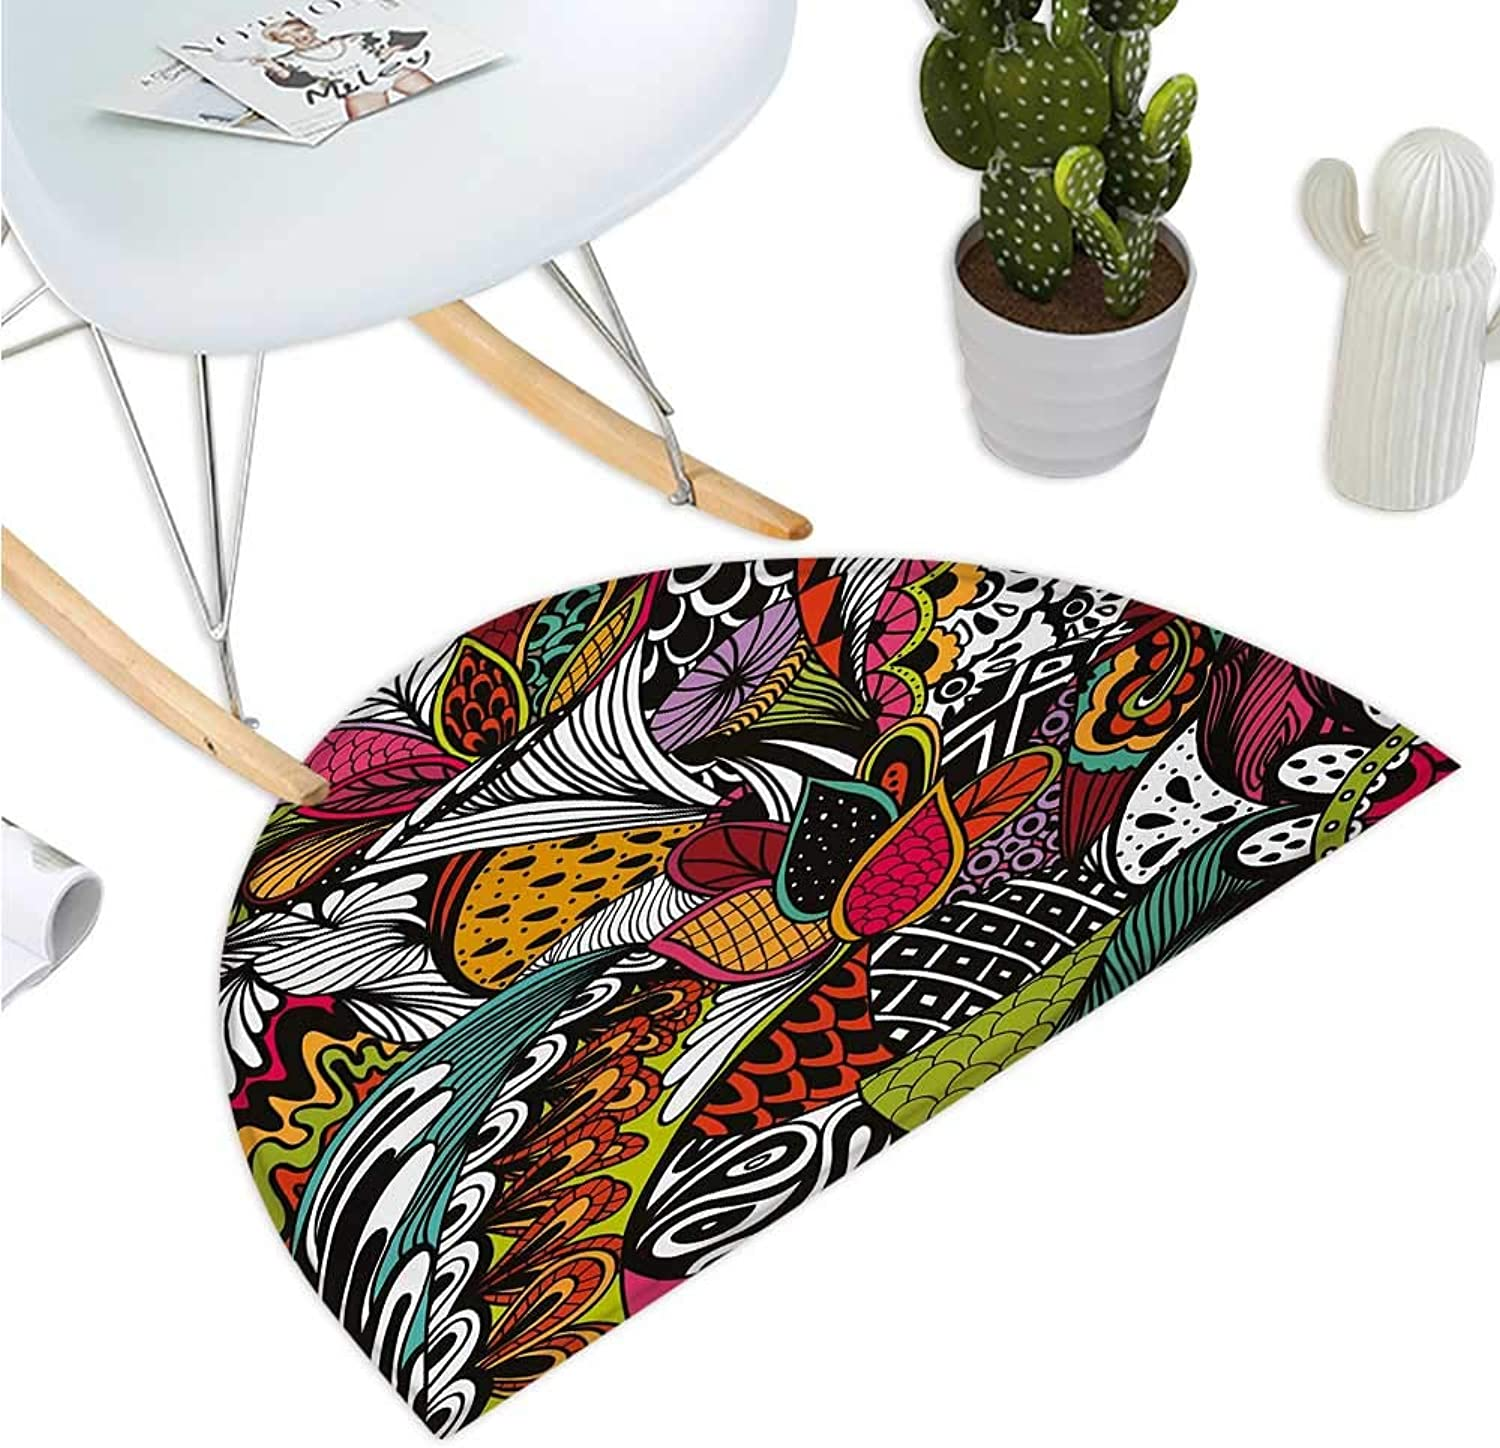 Garden Semicircular Cushion Doodle Abstract Exotic Flowers colorful Ornate Leaves Petals Festive Tropical Print Entry Door Mat H 35.4  xD 53.1  Multicolor